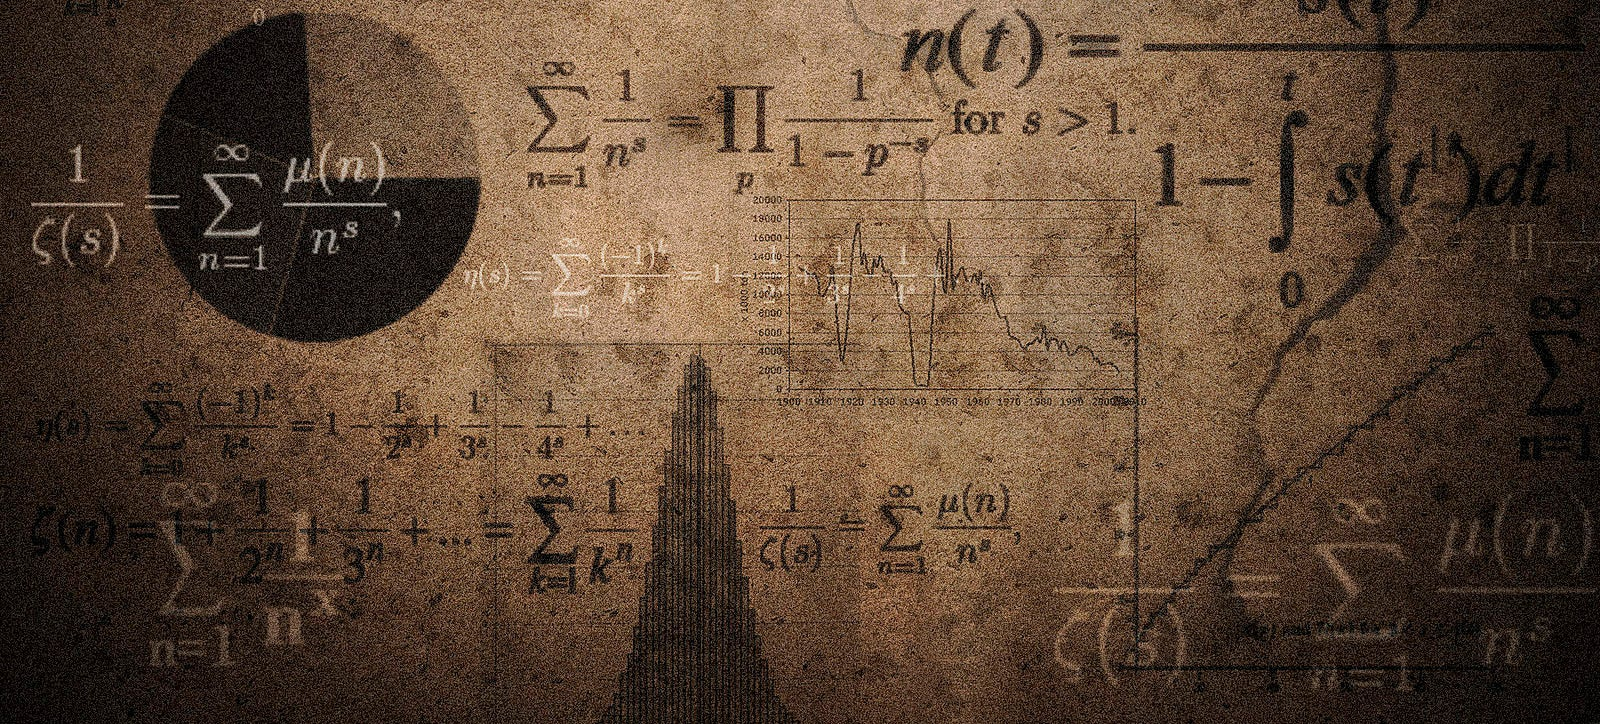 Silicon Valley Giants Just Handed Out $US15M in Prizes to Mathematicians